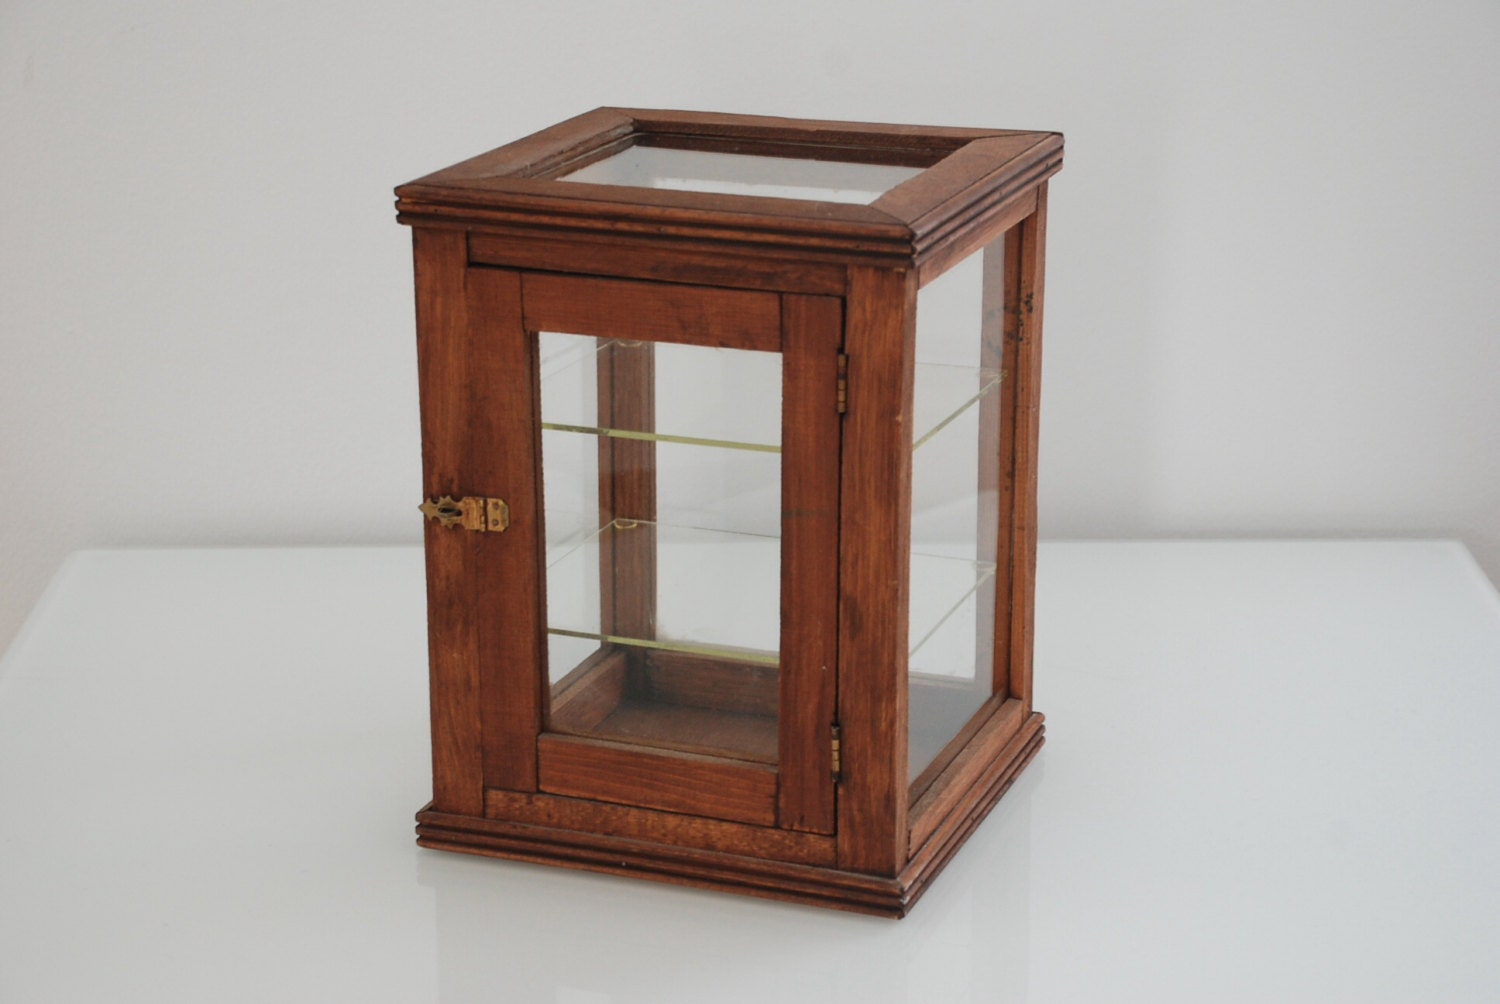 Apothecary Wood Display Box Vitrine Vintage Rustic Home Decor